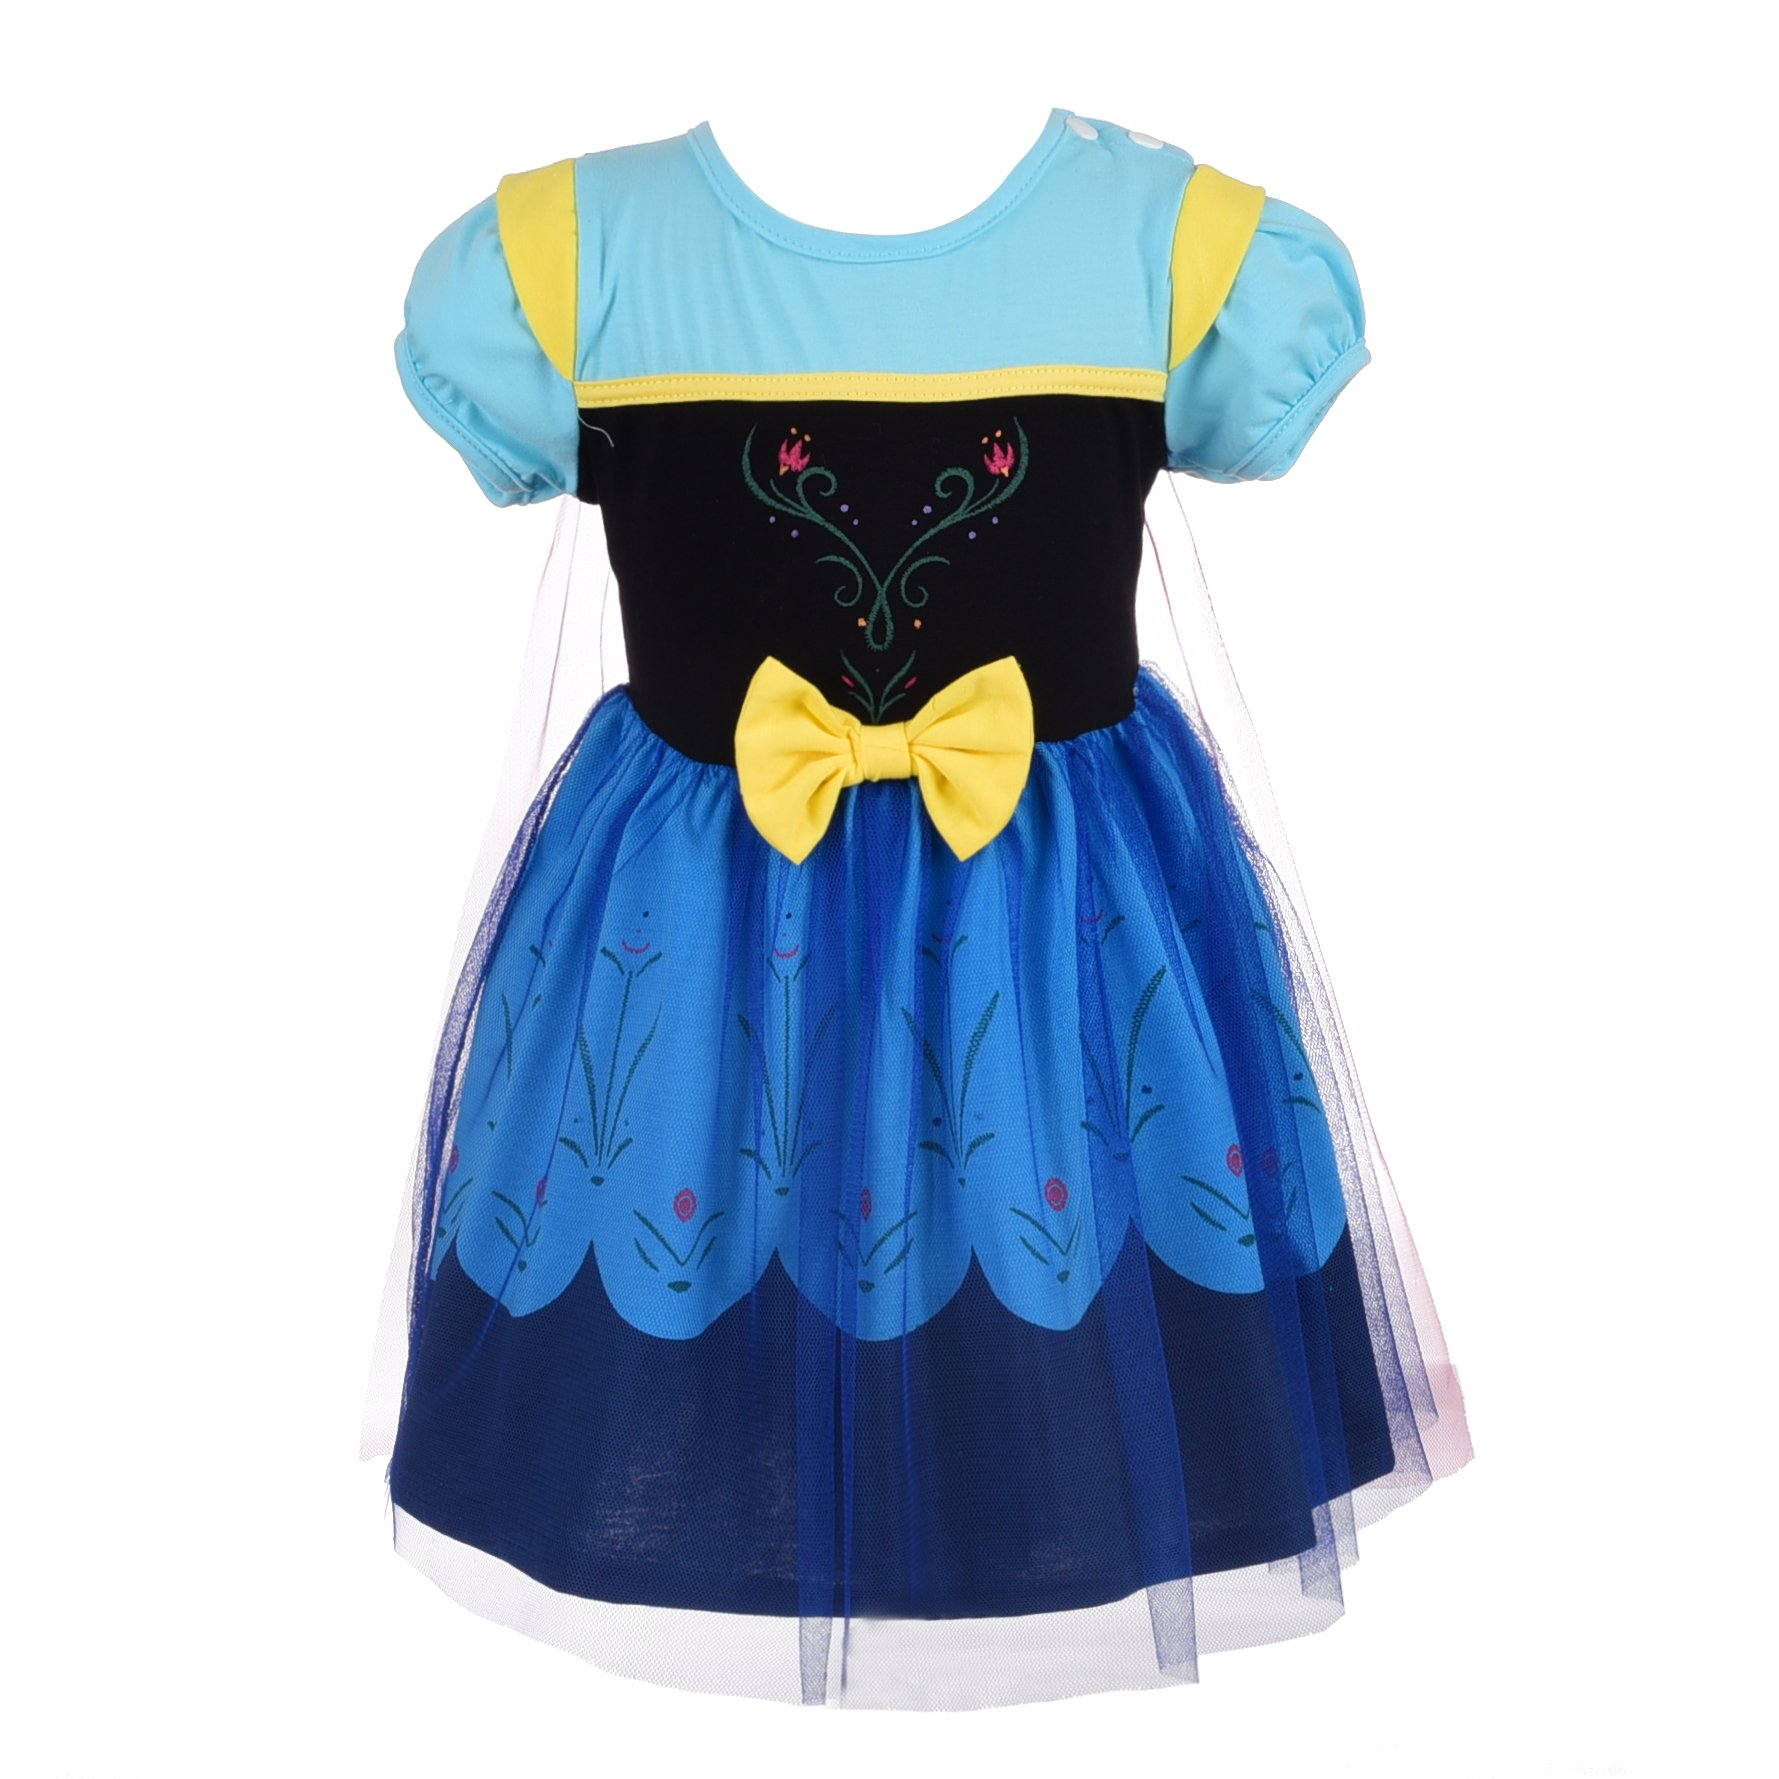 Dressy Daisy Princess Anna Dress for Toddler Girls with Cape Halloween Fancy Party Costume Dress Size 2T